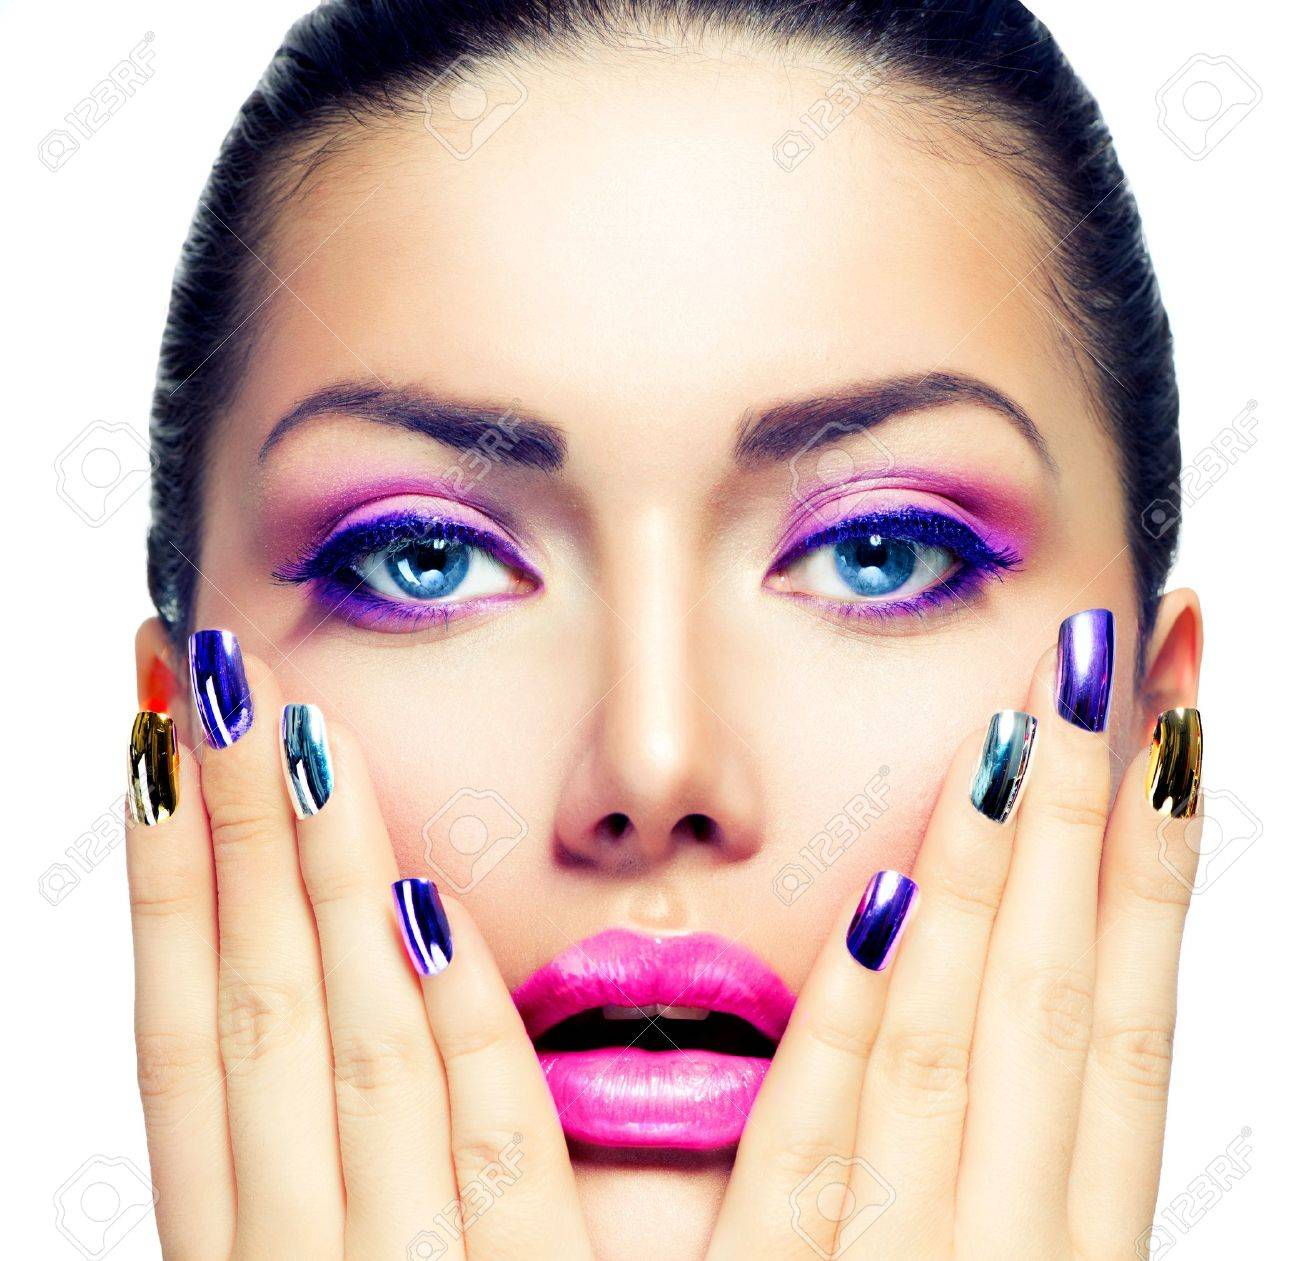 Beauty Makeup Purple Make-up And Colorful Bright Nails Stock Photo ...